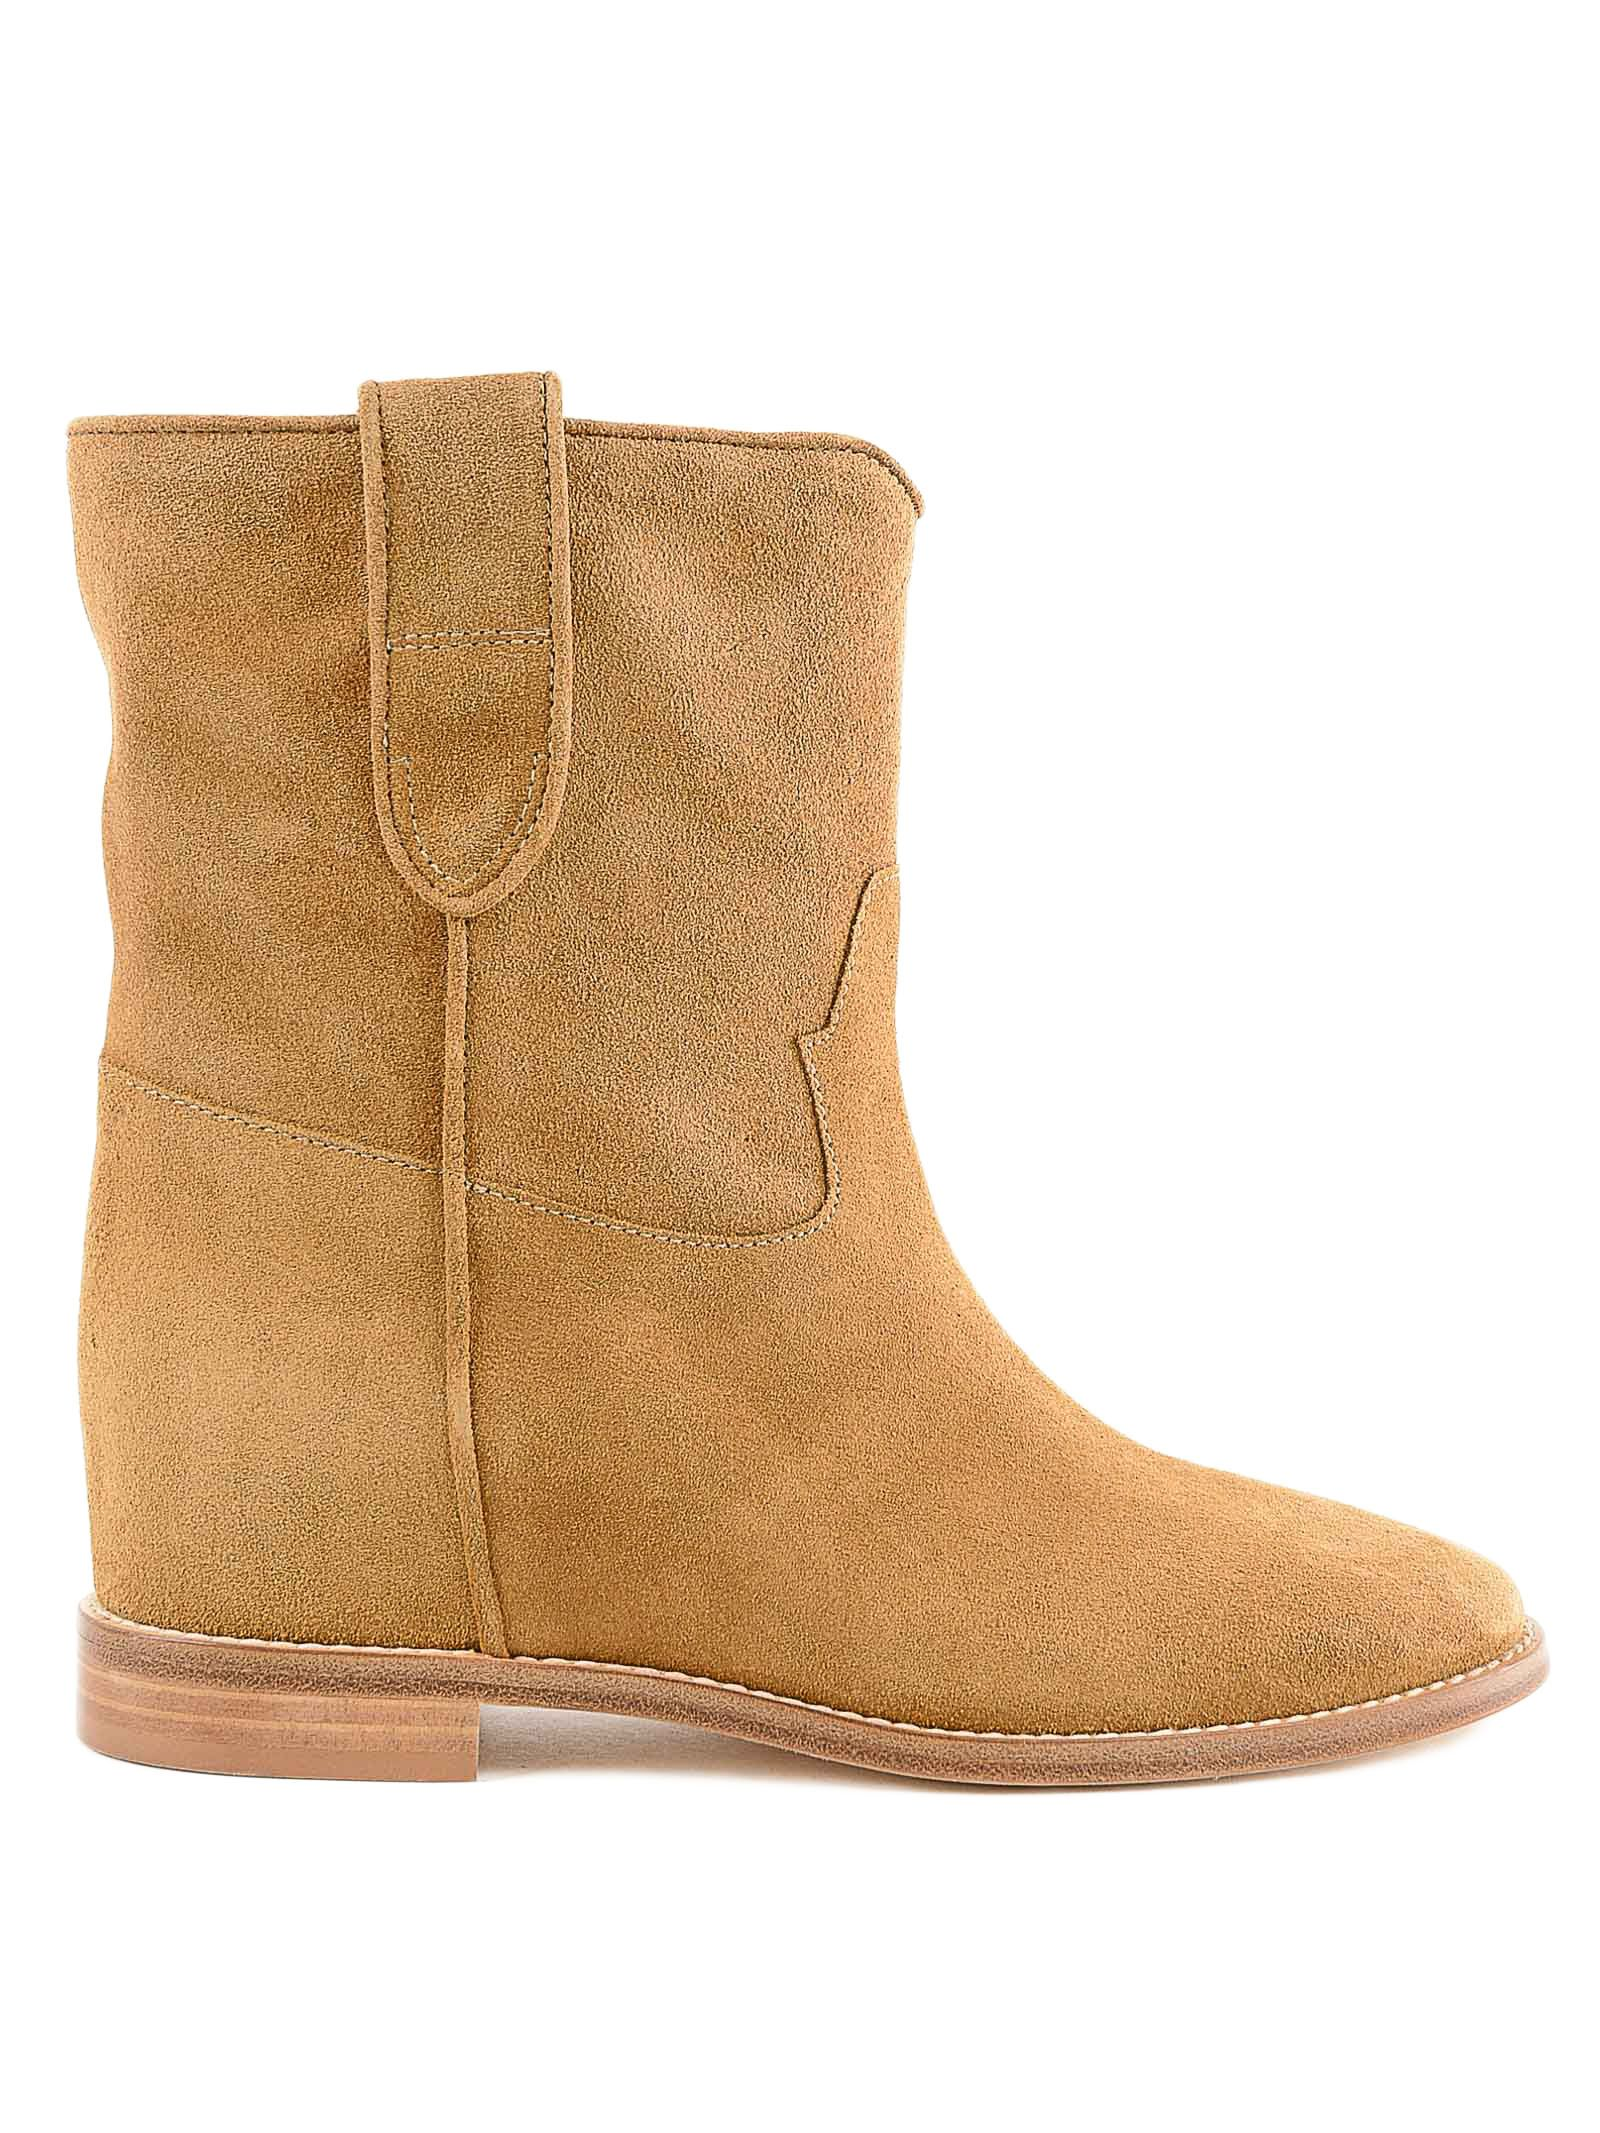 Twinset Round Toe Ankle Boots